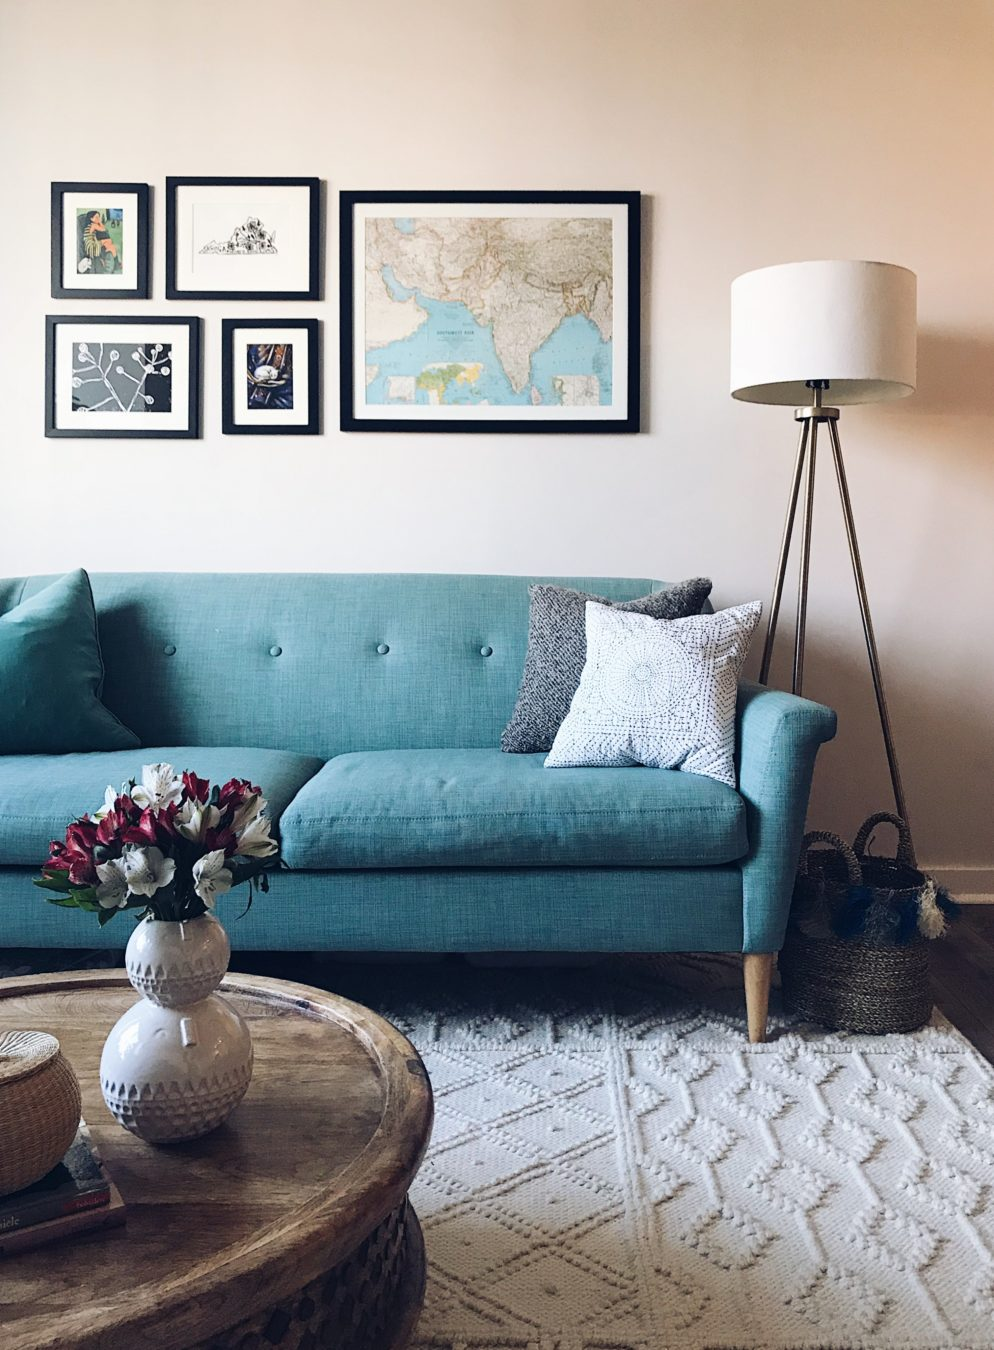 Look Inside My Home: An Insanely Stylish and Surprisingly Affordable Logan Circle Apartment